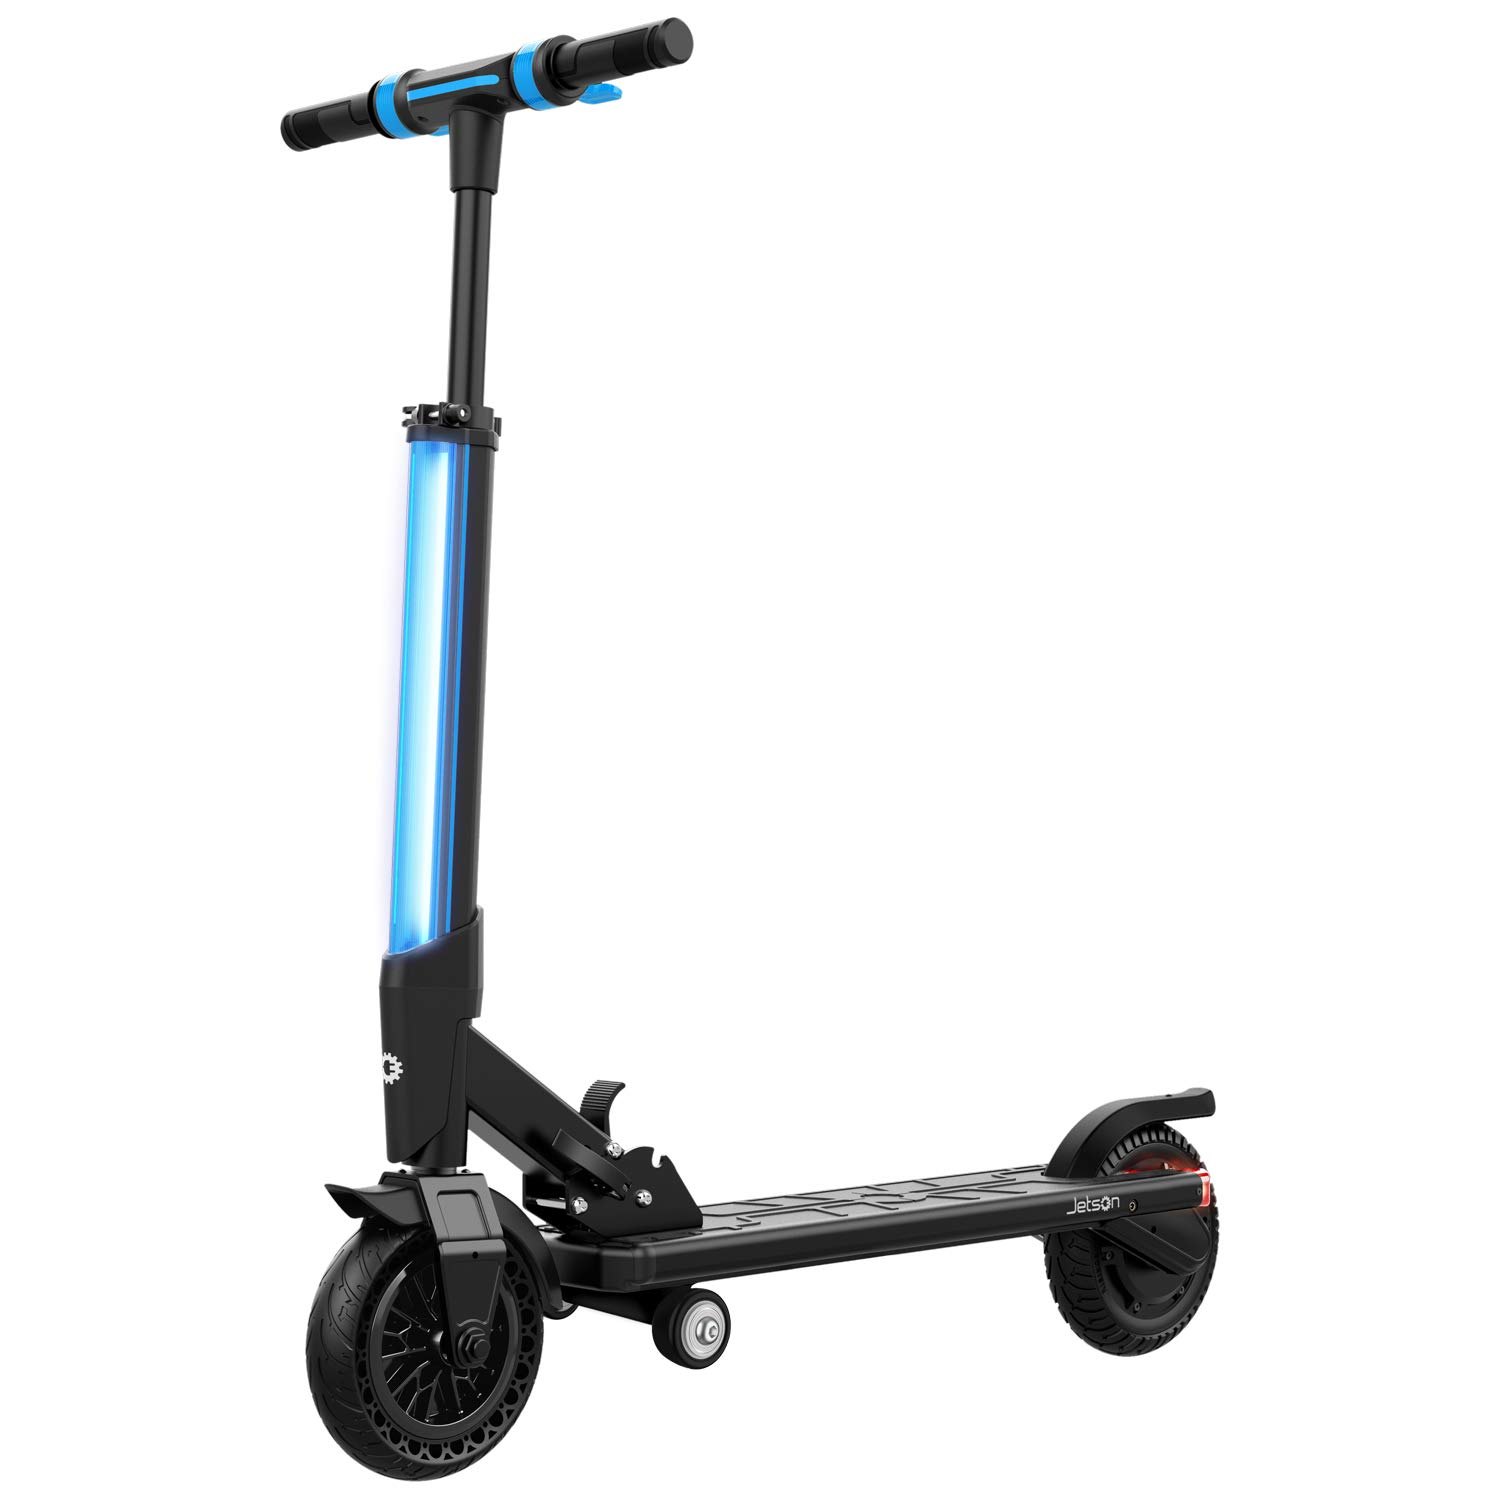 a1b1e77c5e4 Amazon.com : Jetson Electric Bike Bio Folding Electric Scooter with Bright  LED Stem Light and LCD Display, for Teens & Adults : Sports & Outdoors